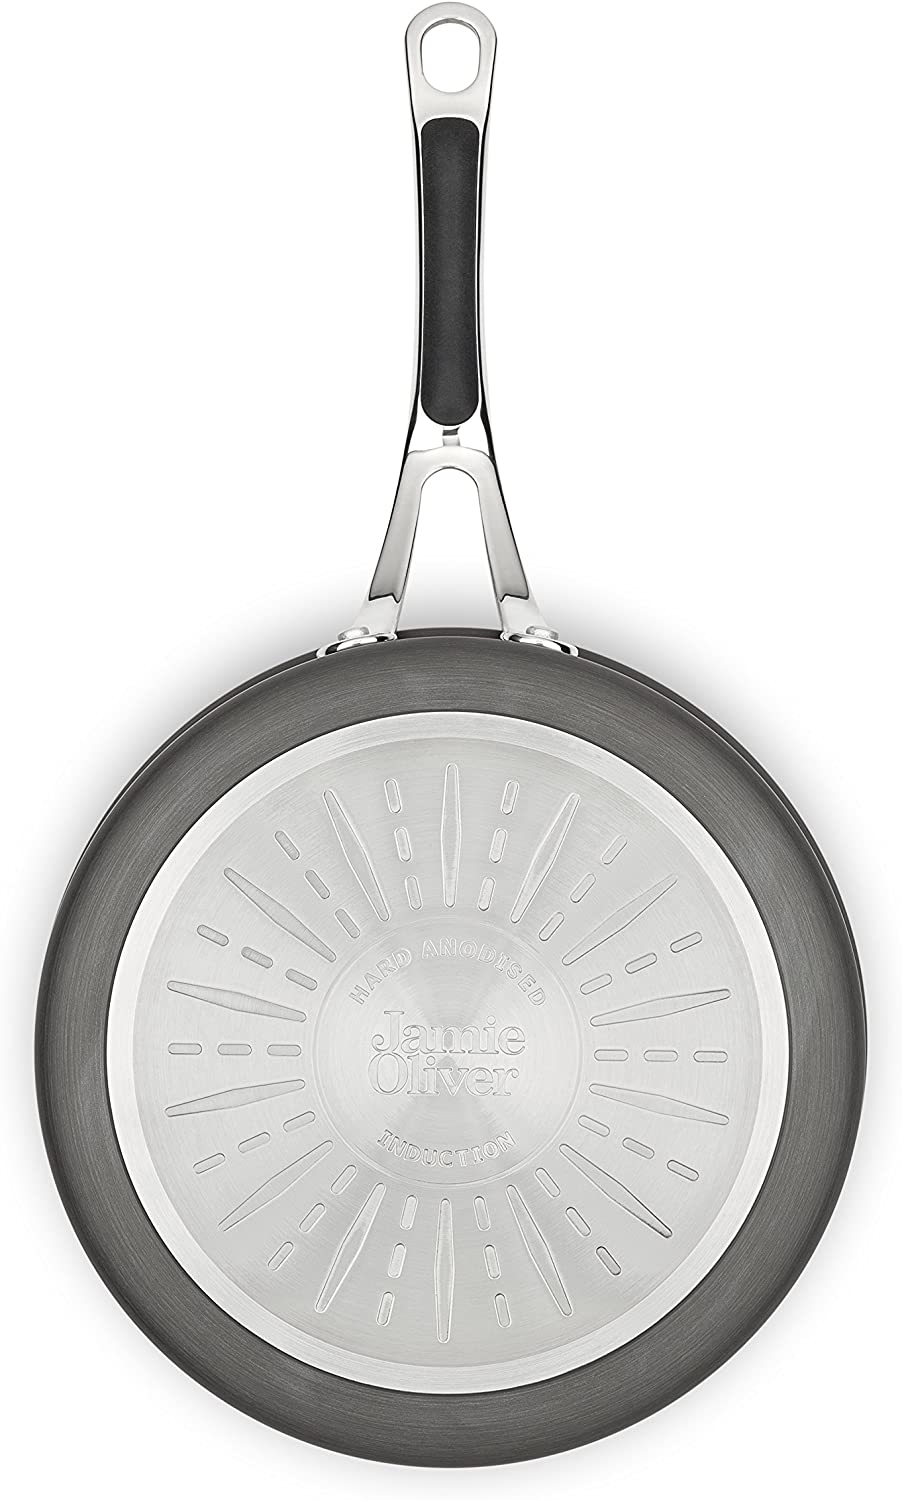 Details about  /Jamie Oliver by Tefal Cooks Classic Hard Anodised Induction Frypan 24cm